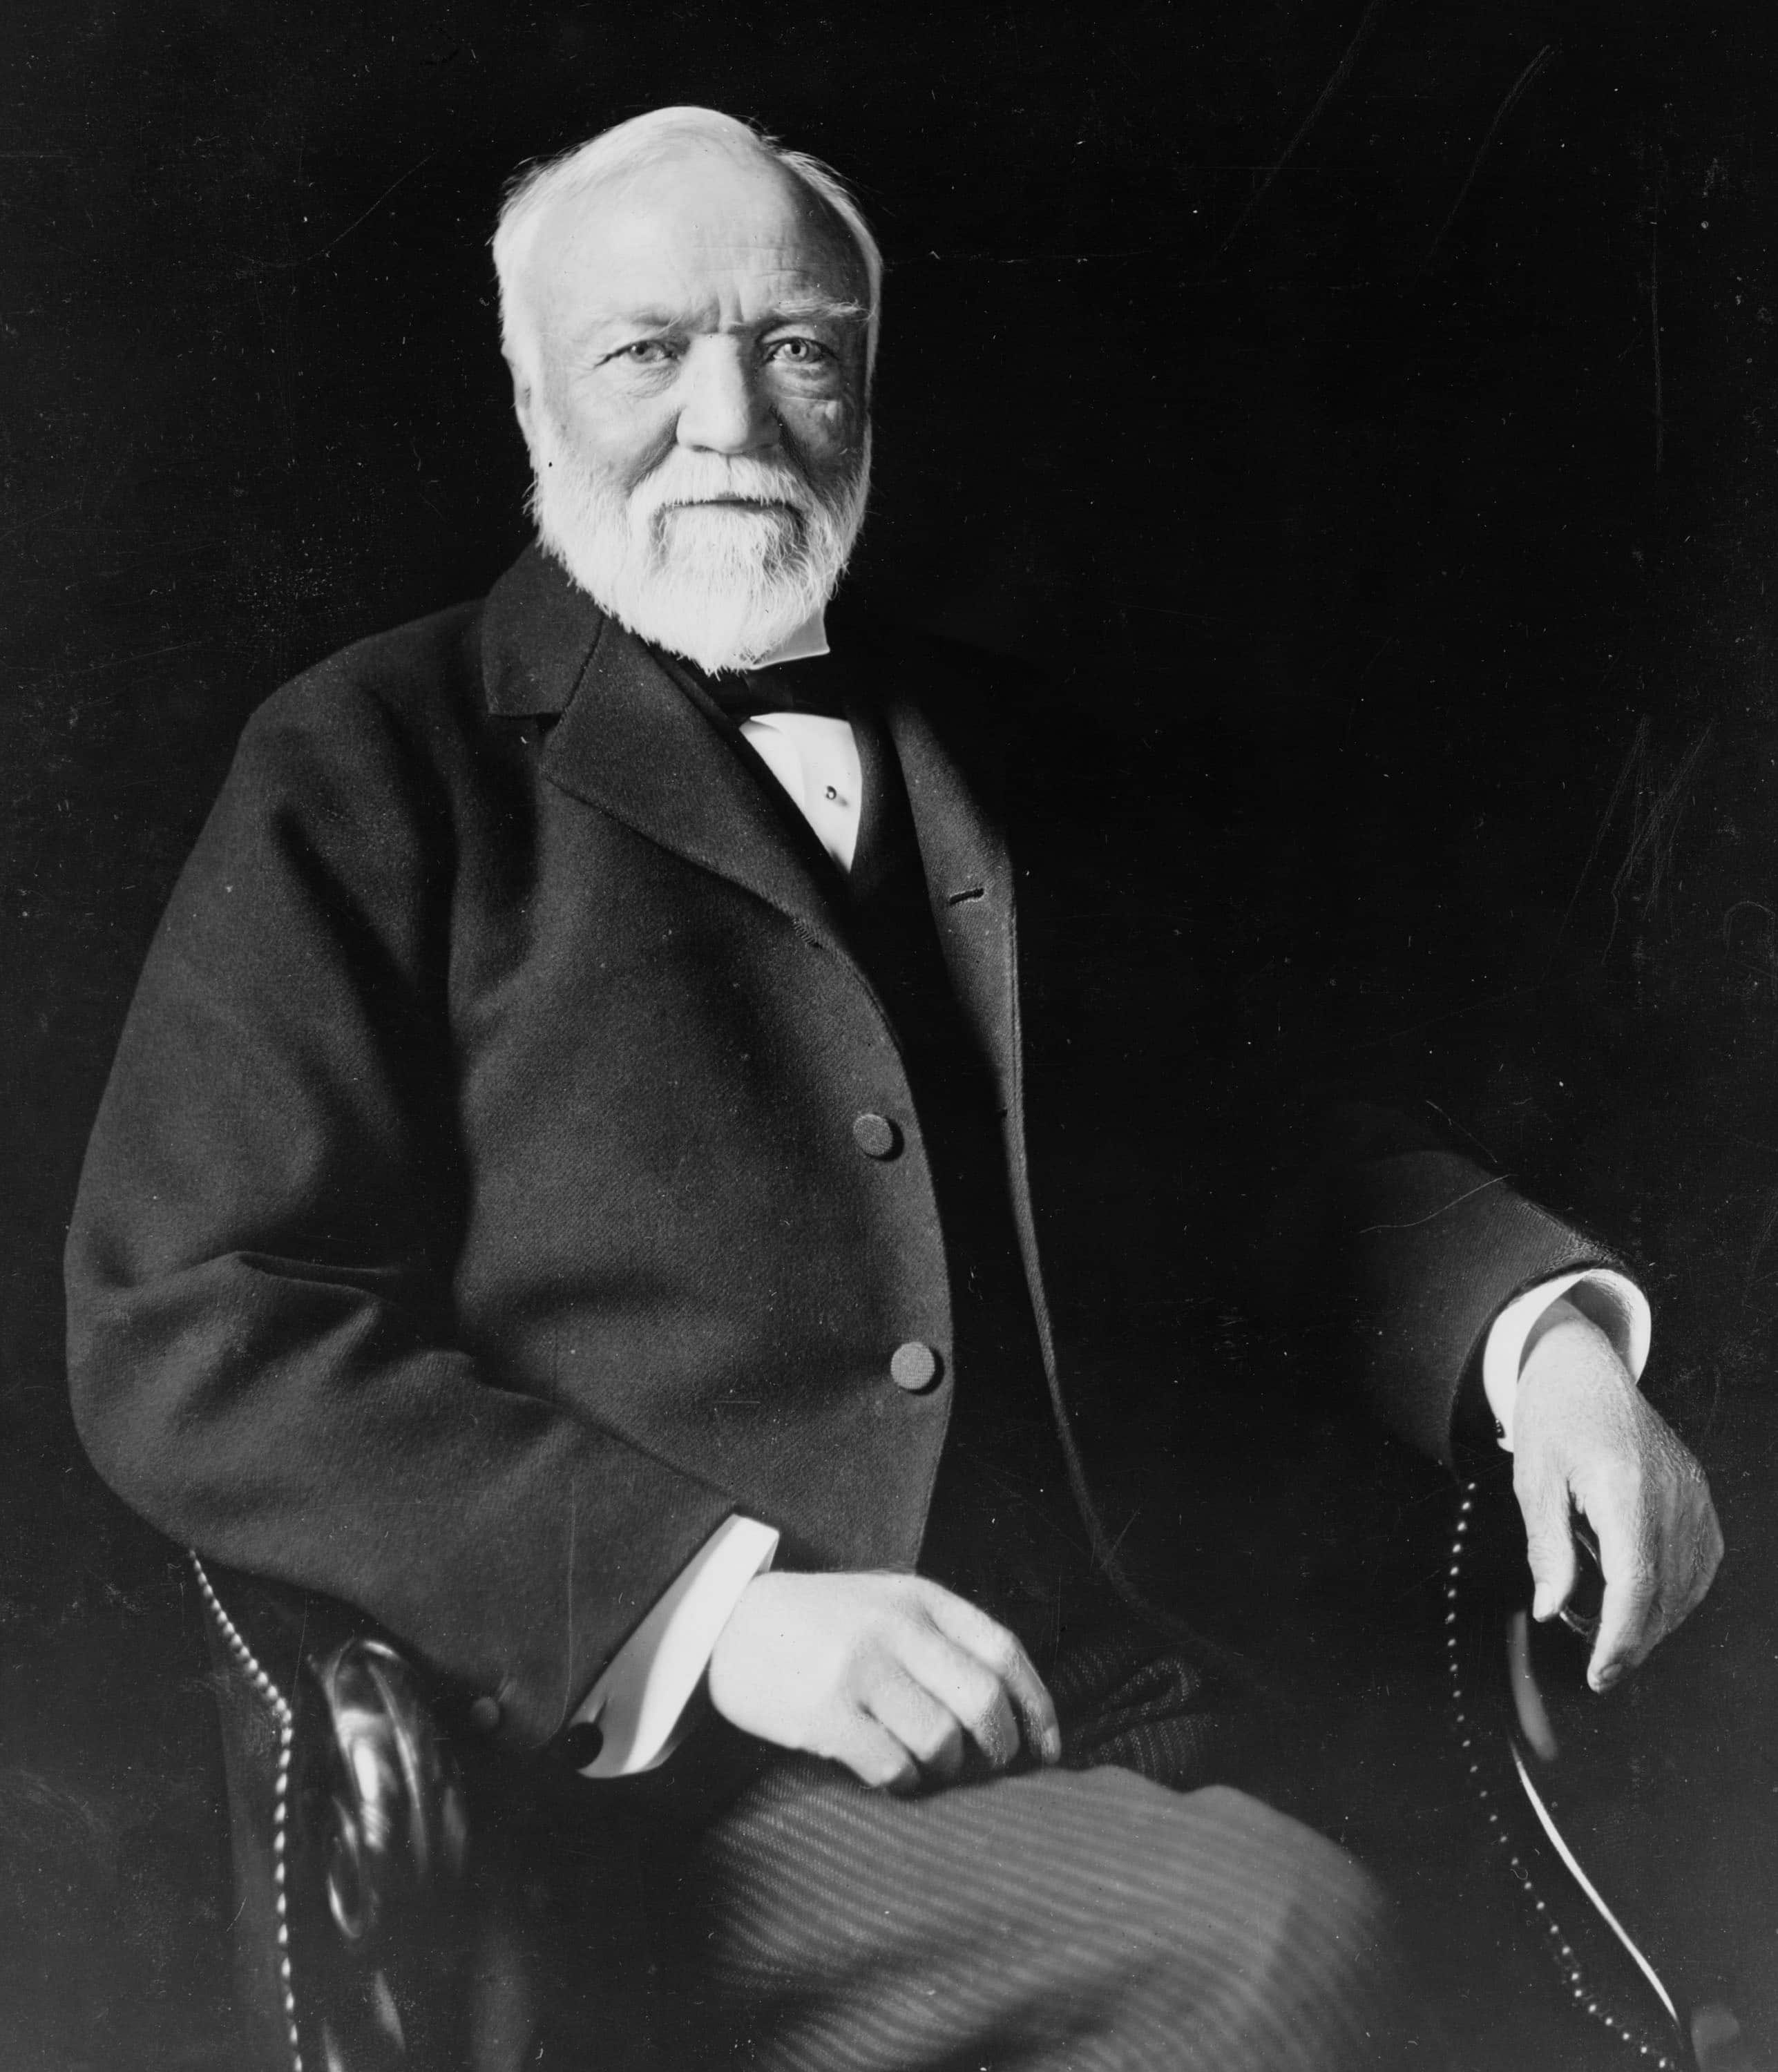 andrew carnegie portrait seated 1913